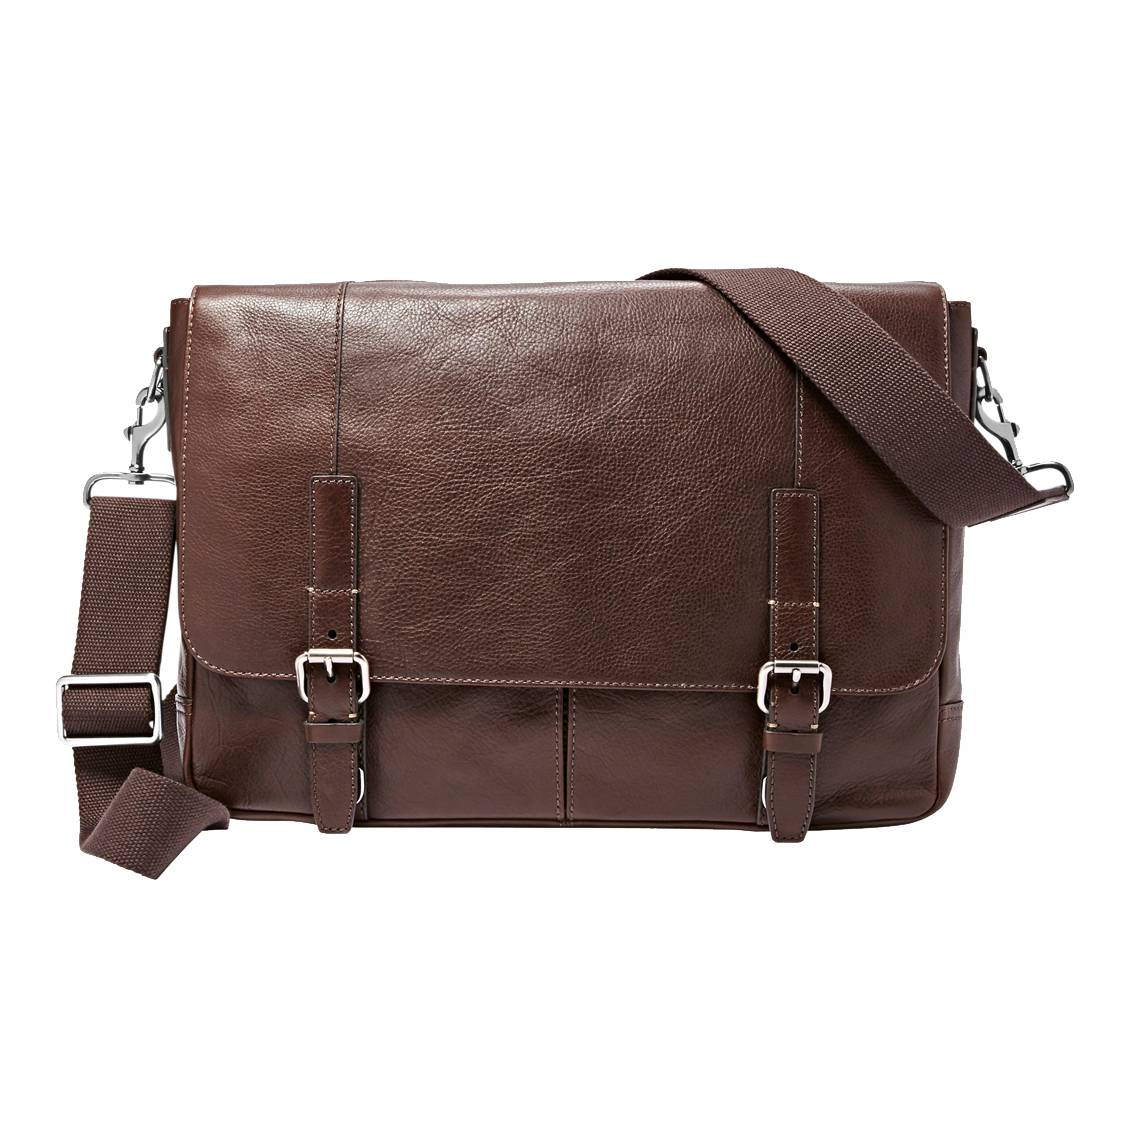 Porte documents ordinateur 15 pouces Graham Fossil en cuir marron     Porte documents Porte ordinateur 15 pouces Graham Fossil en cuir marron